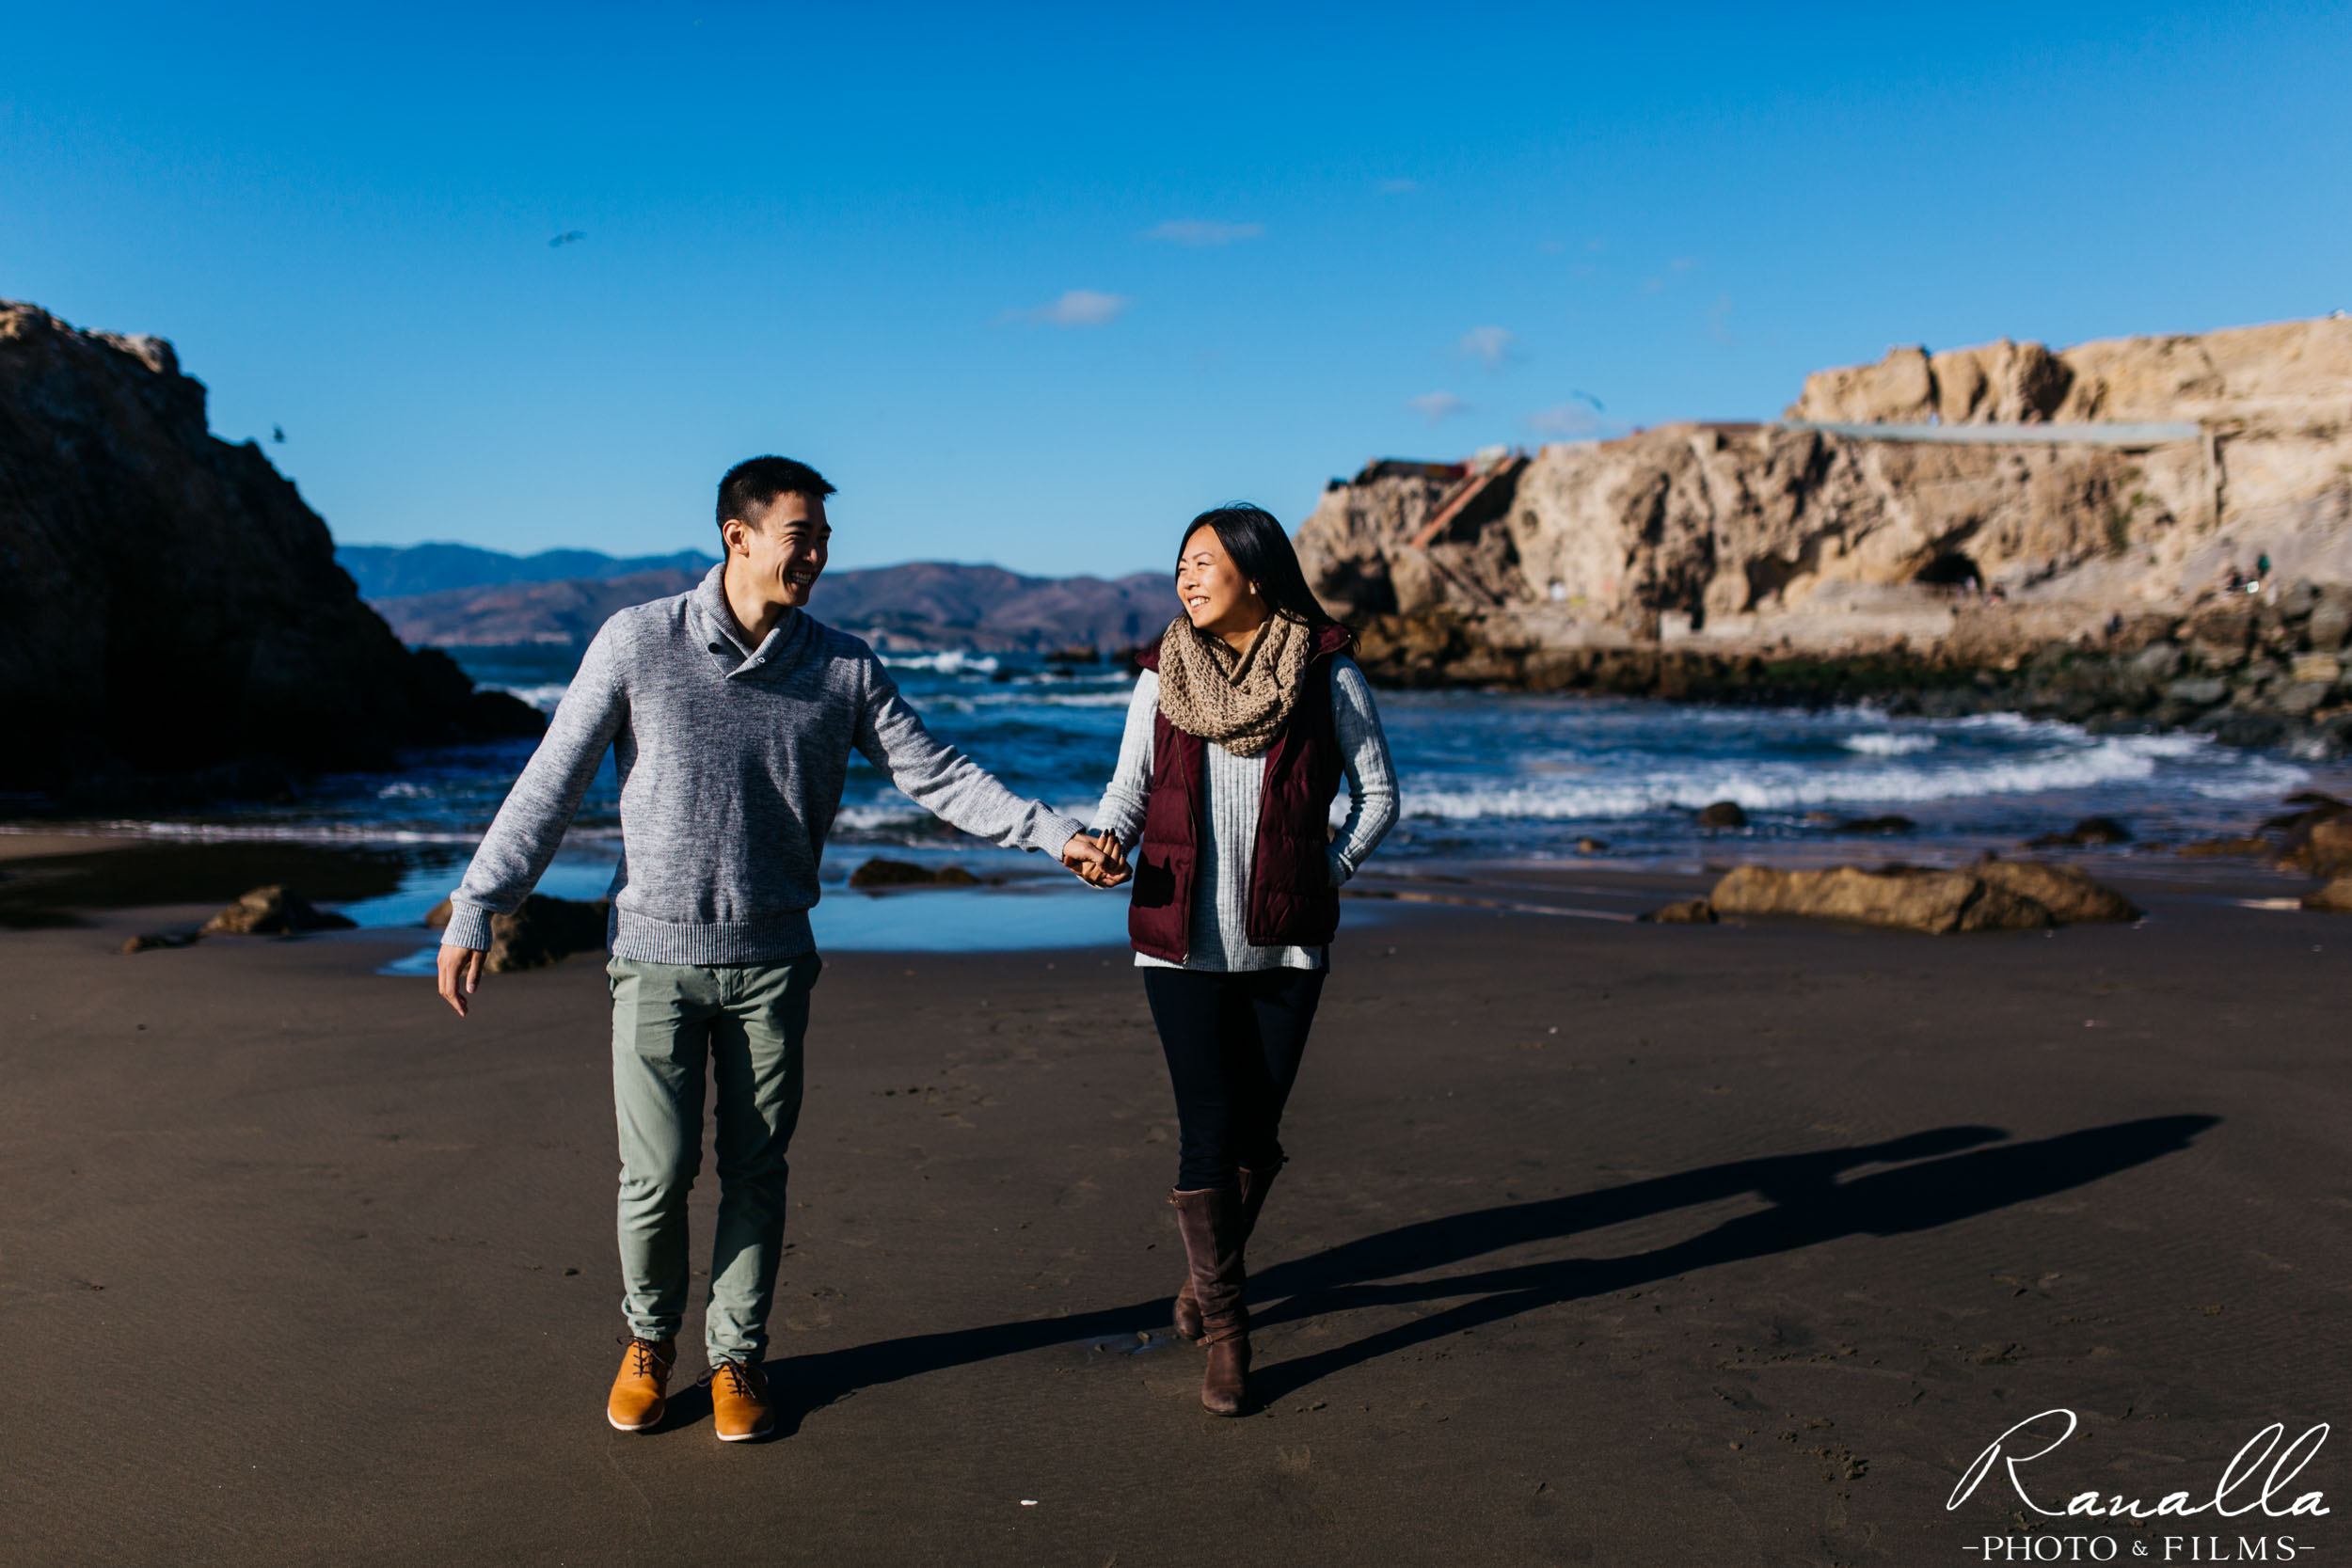 San Francisco Engagement Photography- San Francisco Coast- Lands End Wedding Photos- Ranalla Photo & Films